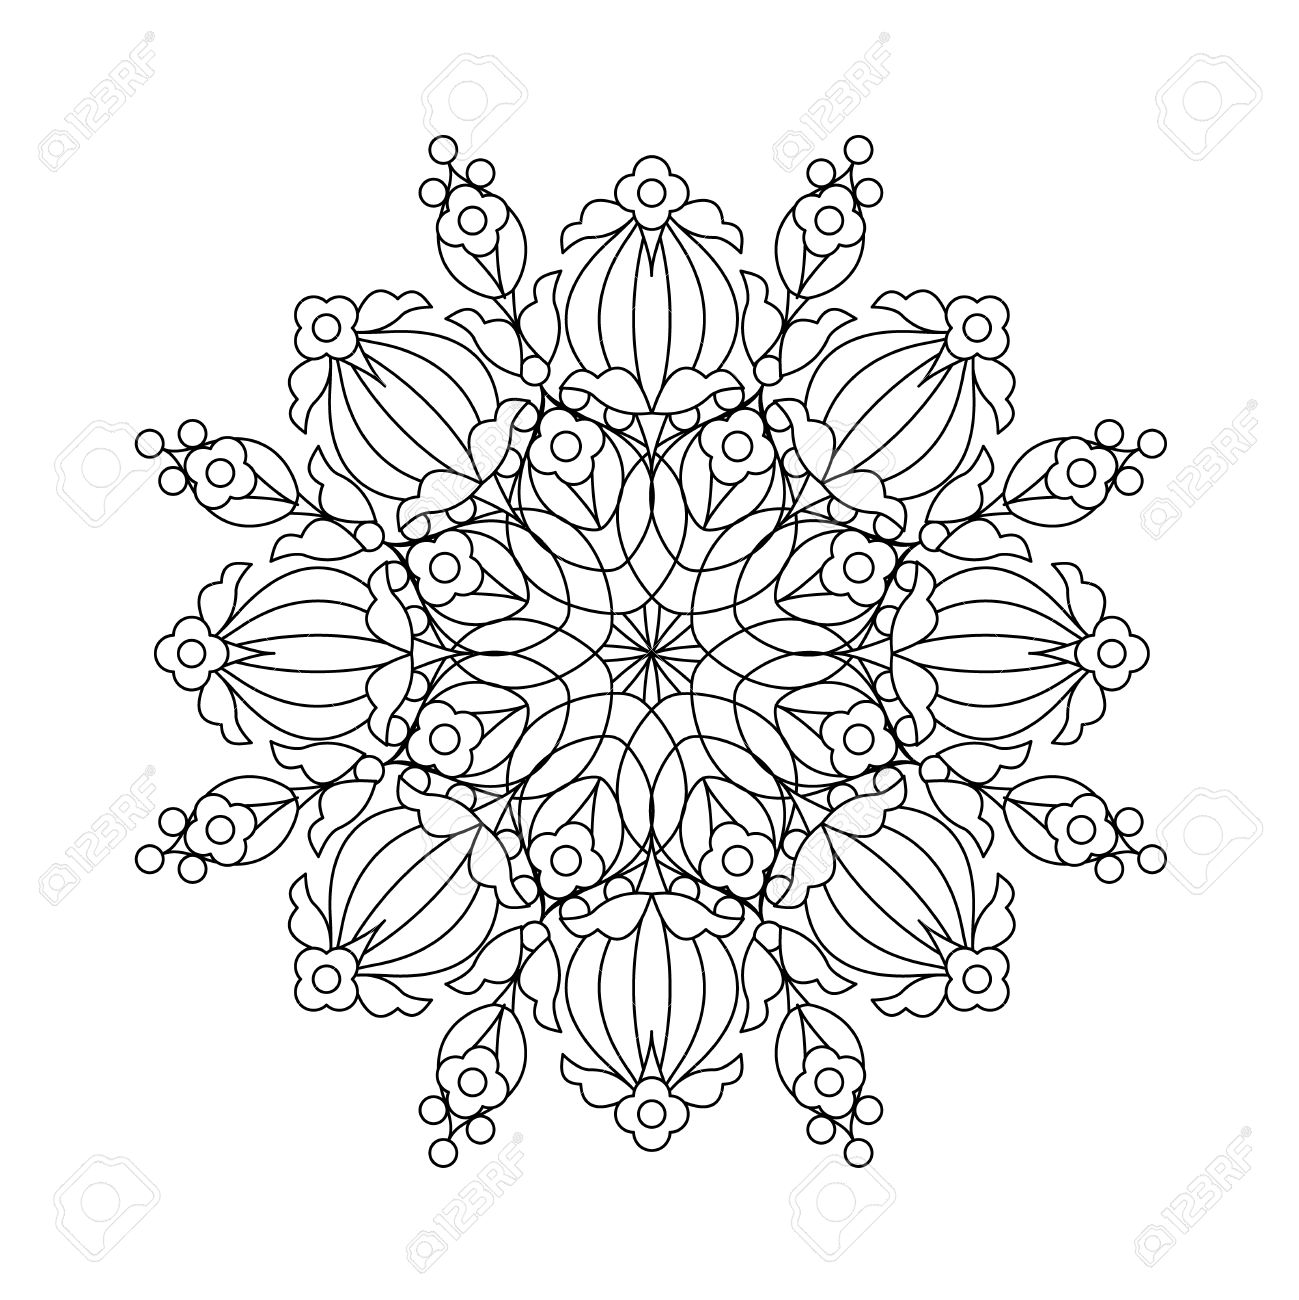 abstract mandala or whimsical snowflake line art design or